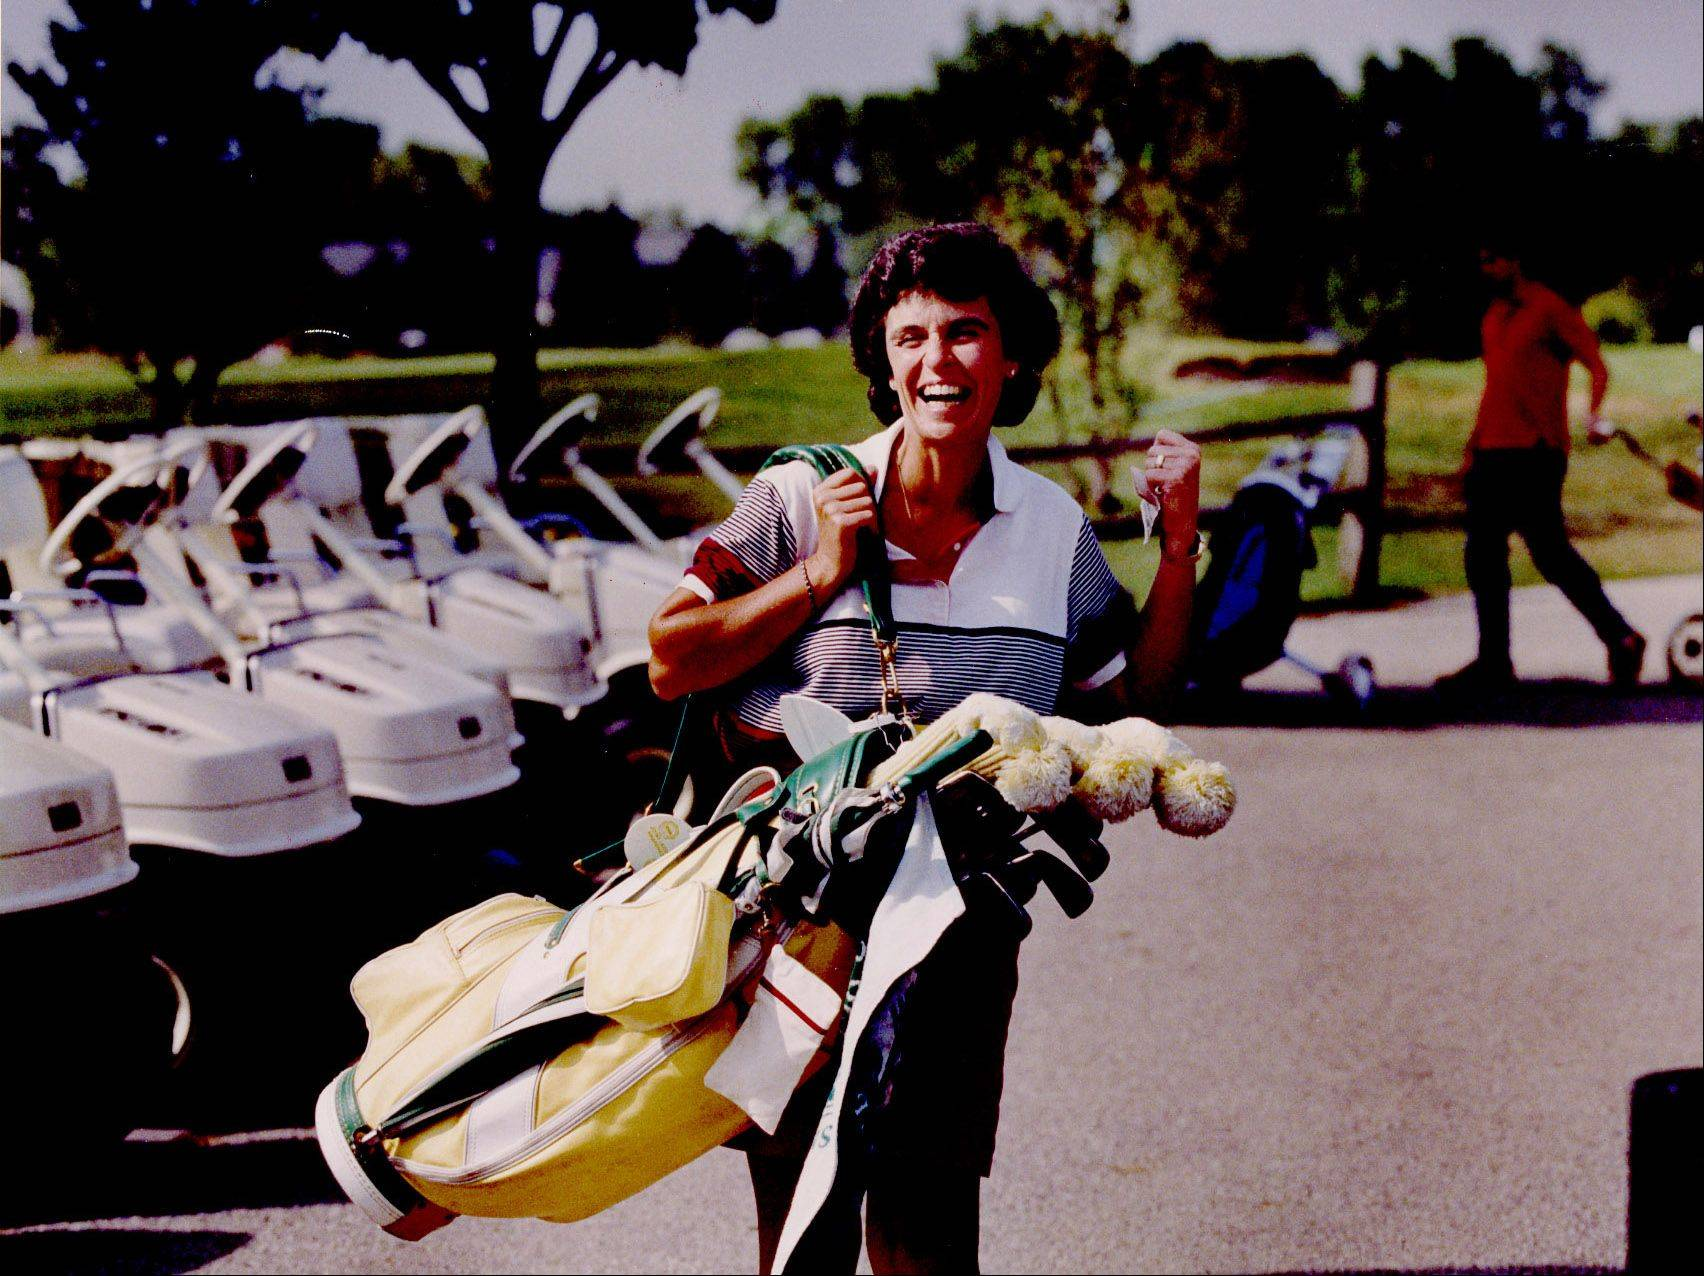 Arlington Heights Village Trustee Arlene Mulder walks to the tee at Arlington Lakes Golf Club, at a 1991 outing.